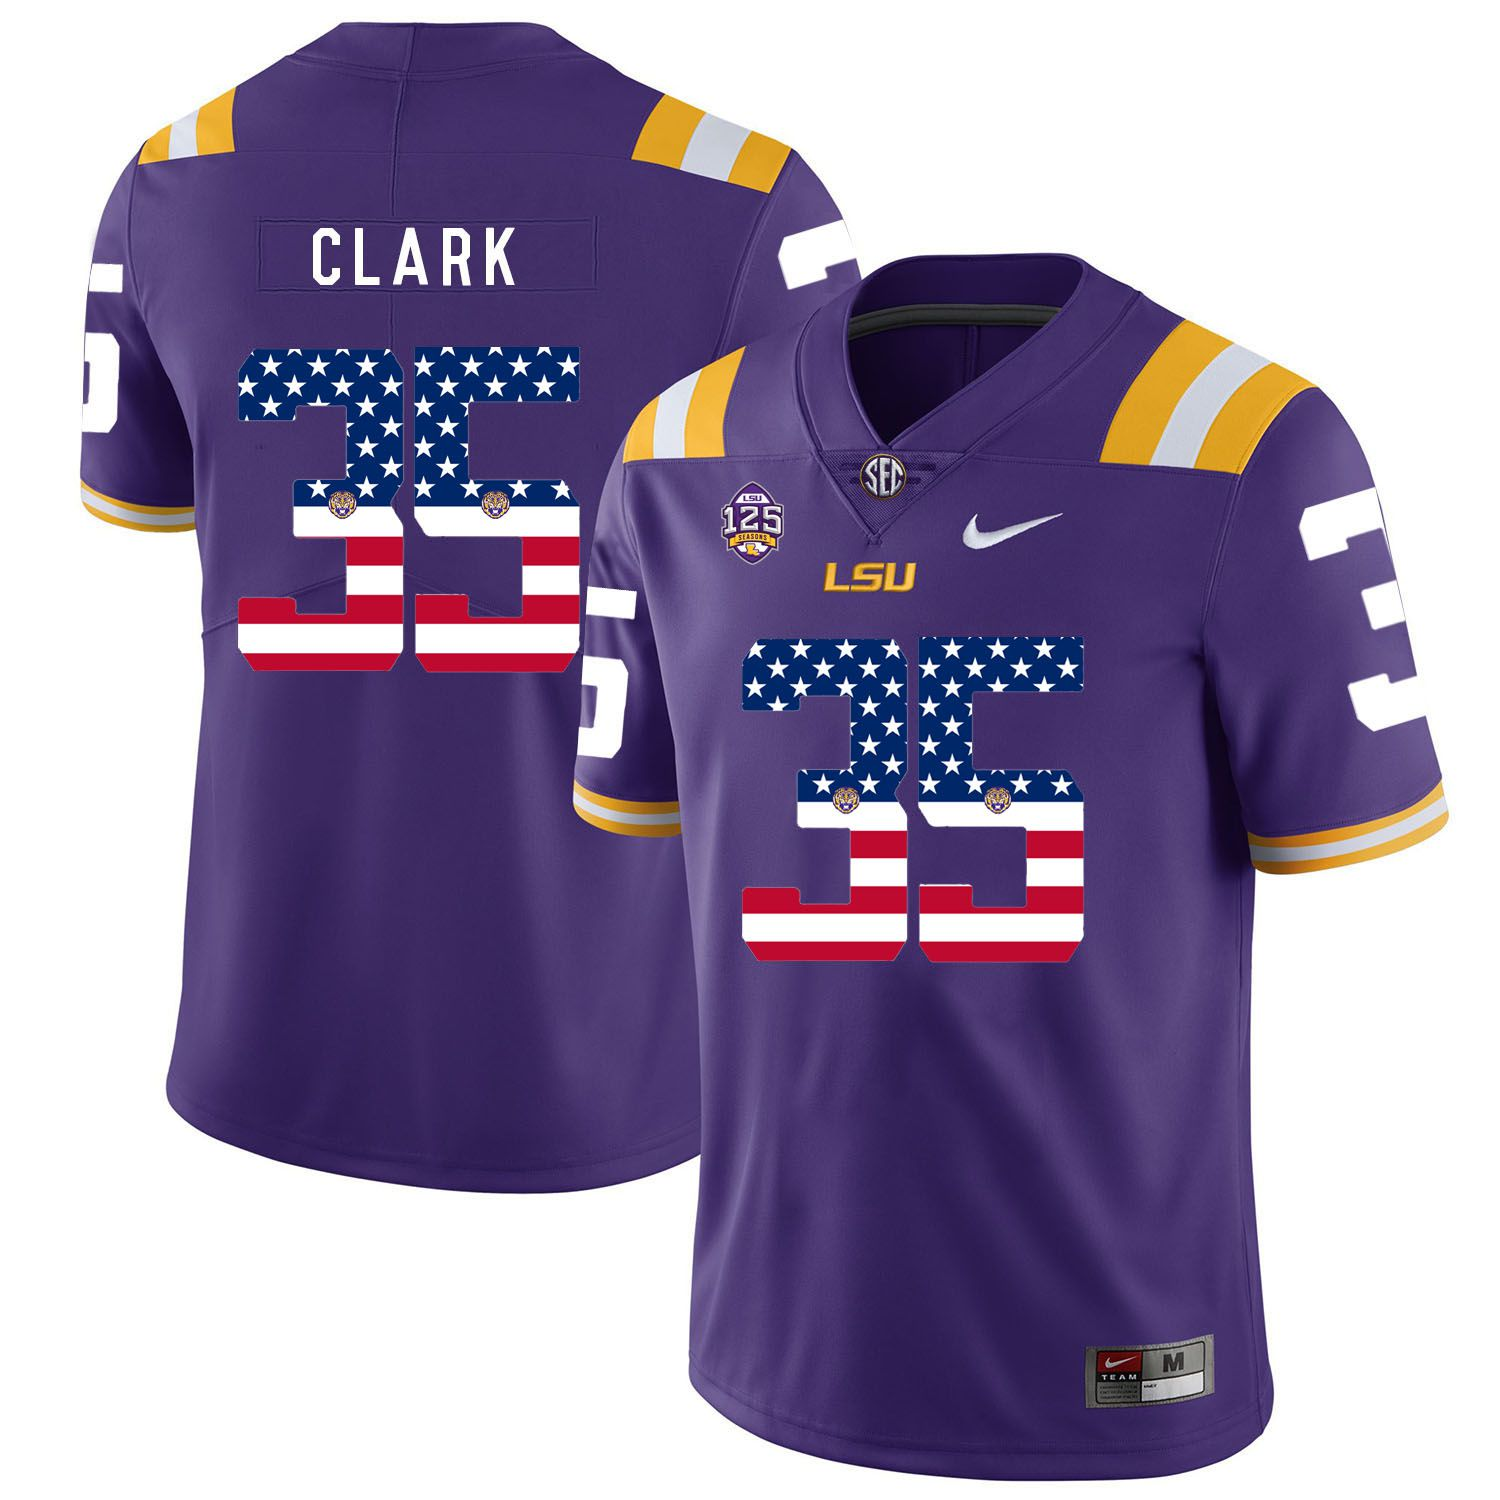 Men LSU Tigers 35 Clark Purple Flag Customized NCAA Jerseys